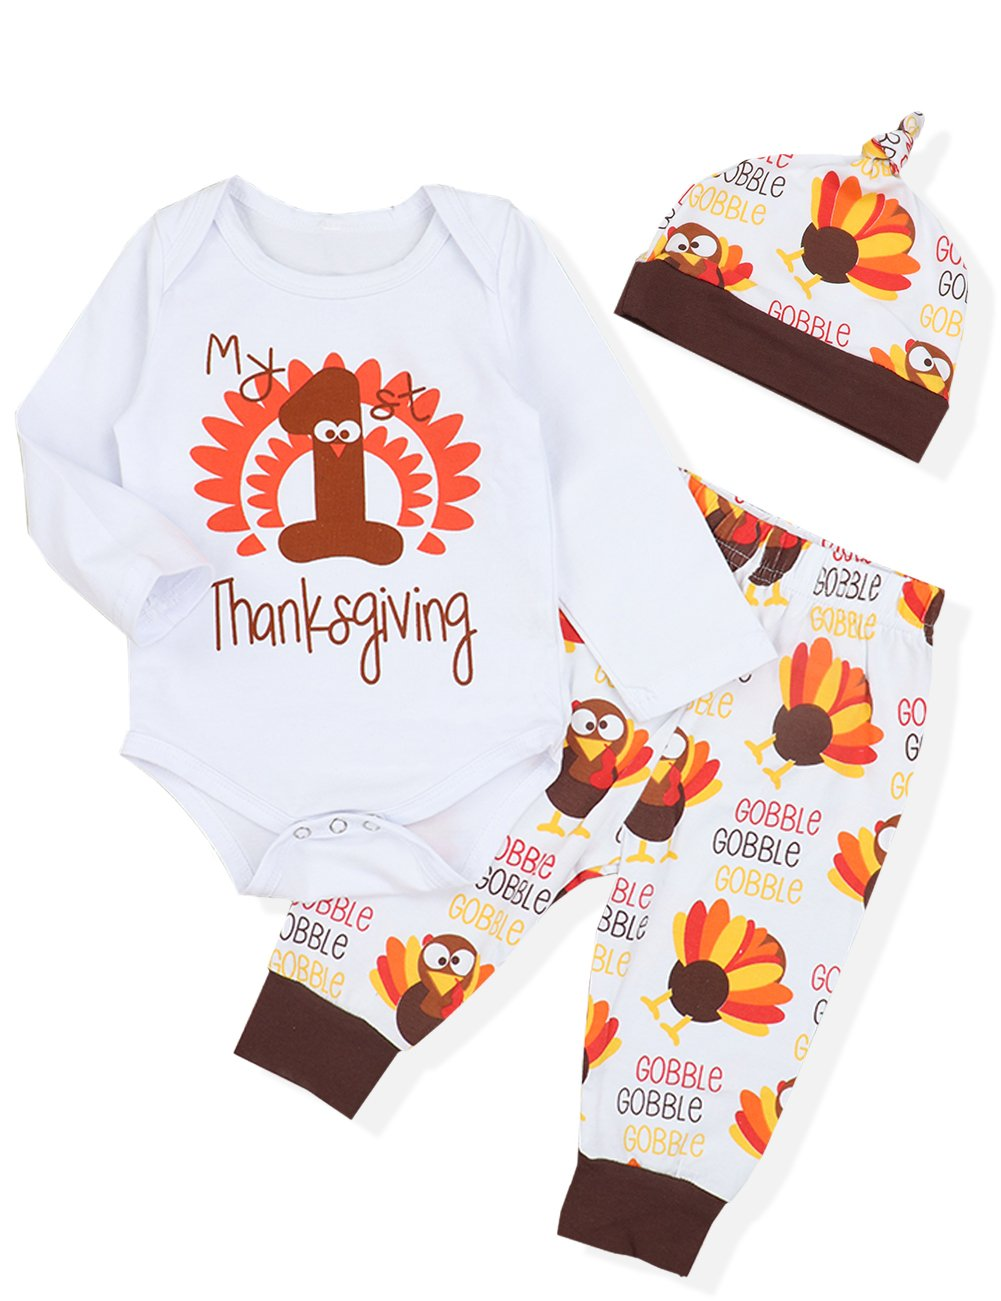 7a5e3a1bf430 Galleon - 3PCS Newborn Baby Boys Girl Clothes My First Thanksgiving  Romper,Cute Turkey Pattern Pants + Hat Onesies Outfit Set(0-3 Months)